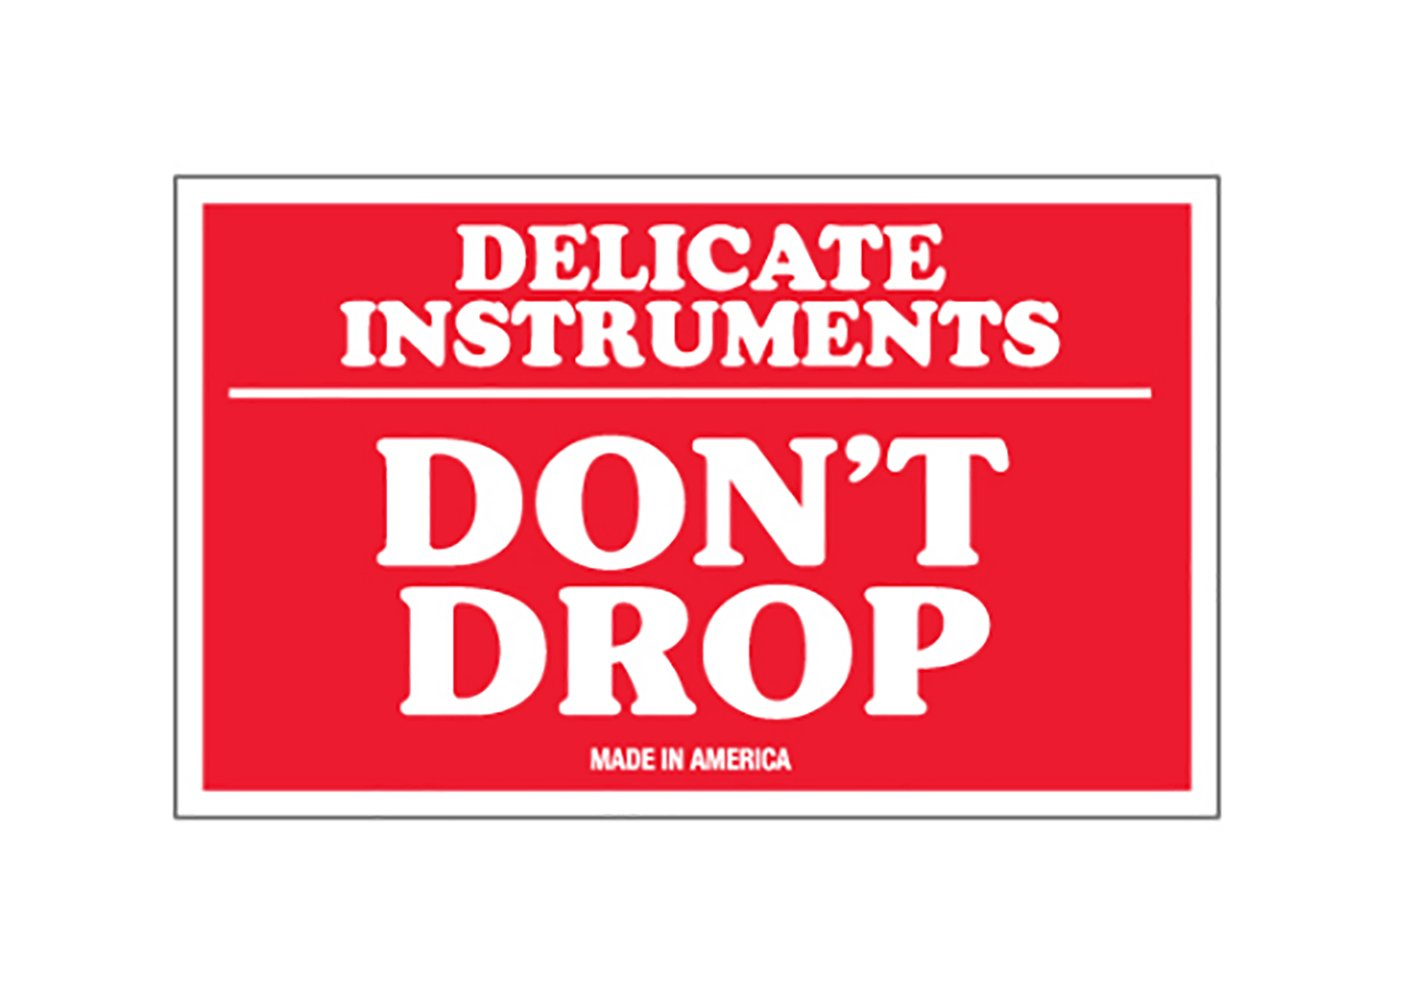 Dont Drop Labels 3.25 Width Delicate Instruments Pack of 500 4.5 Length RetailSource SCL540x1 3 x 5 3.25 Height